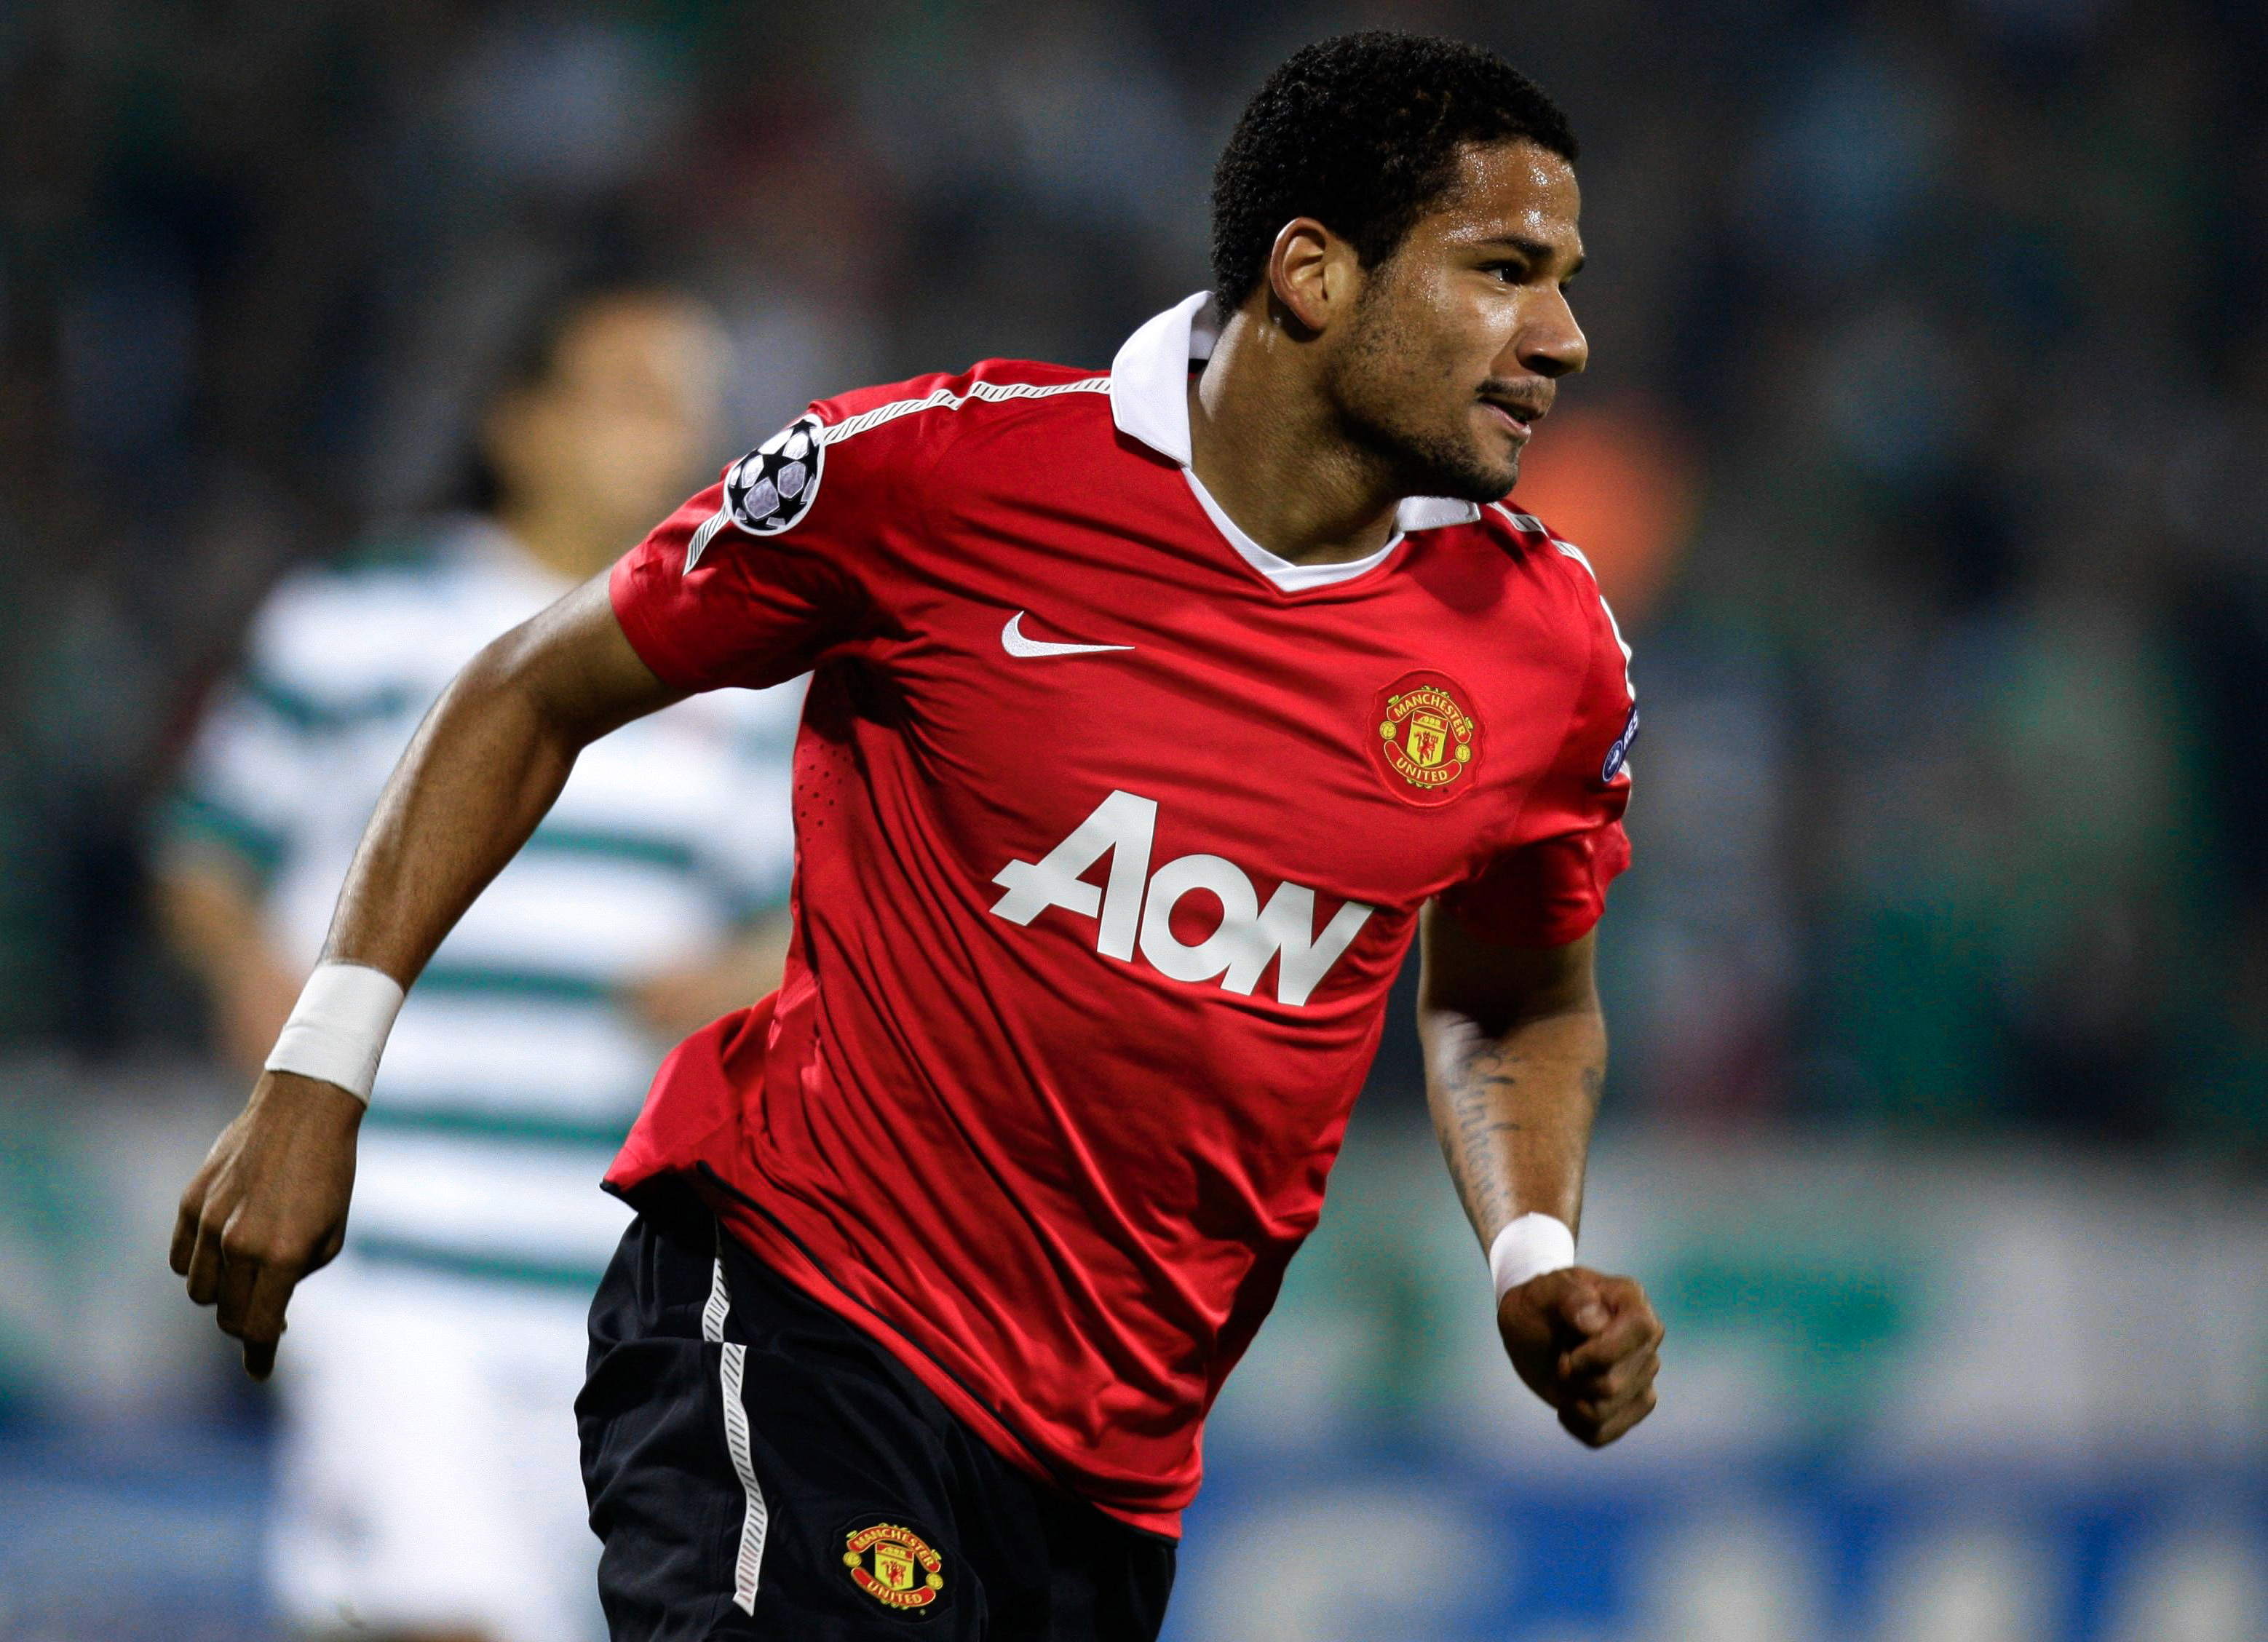 How Bebe Went From Street Football To Manchester United In A Whirlwind 18 Months